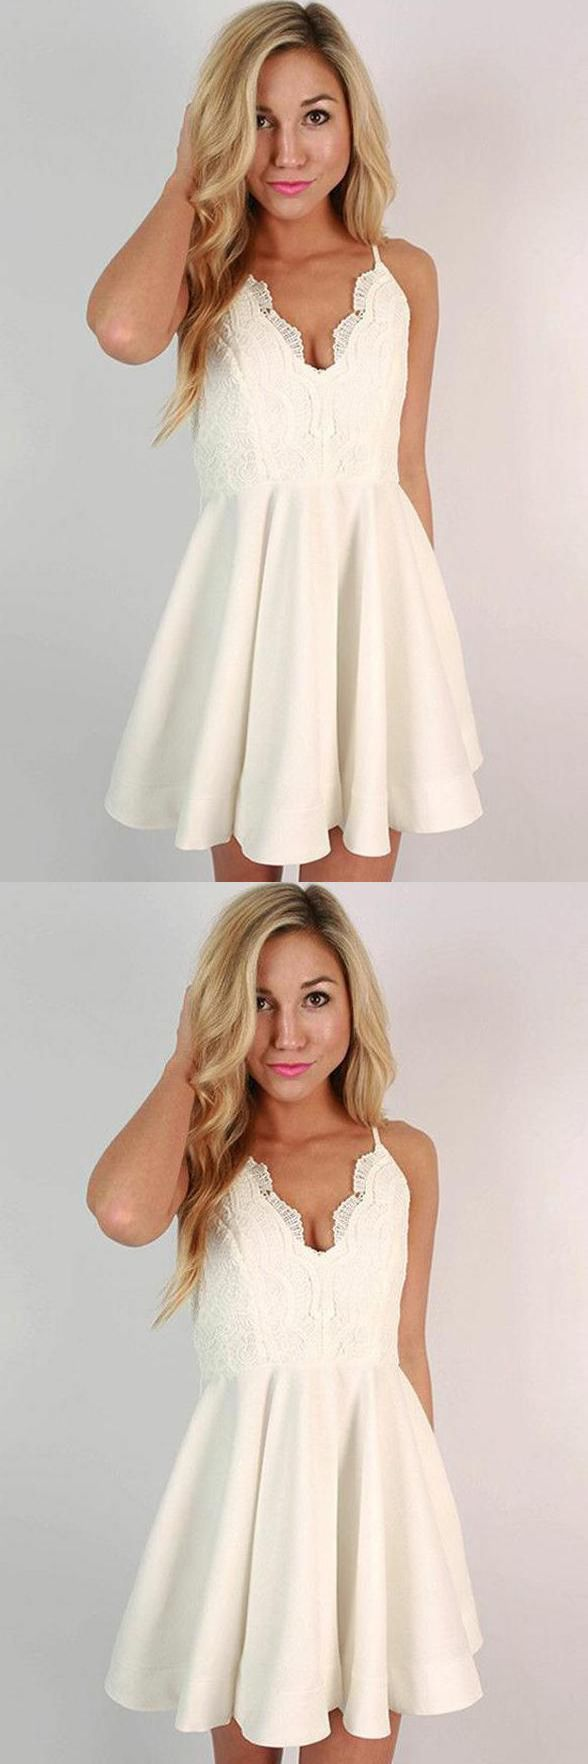 A line spaghetti straps ivory lace short homecoming dresses v neck